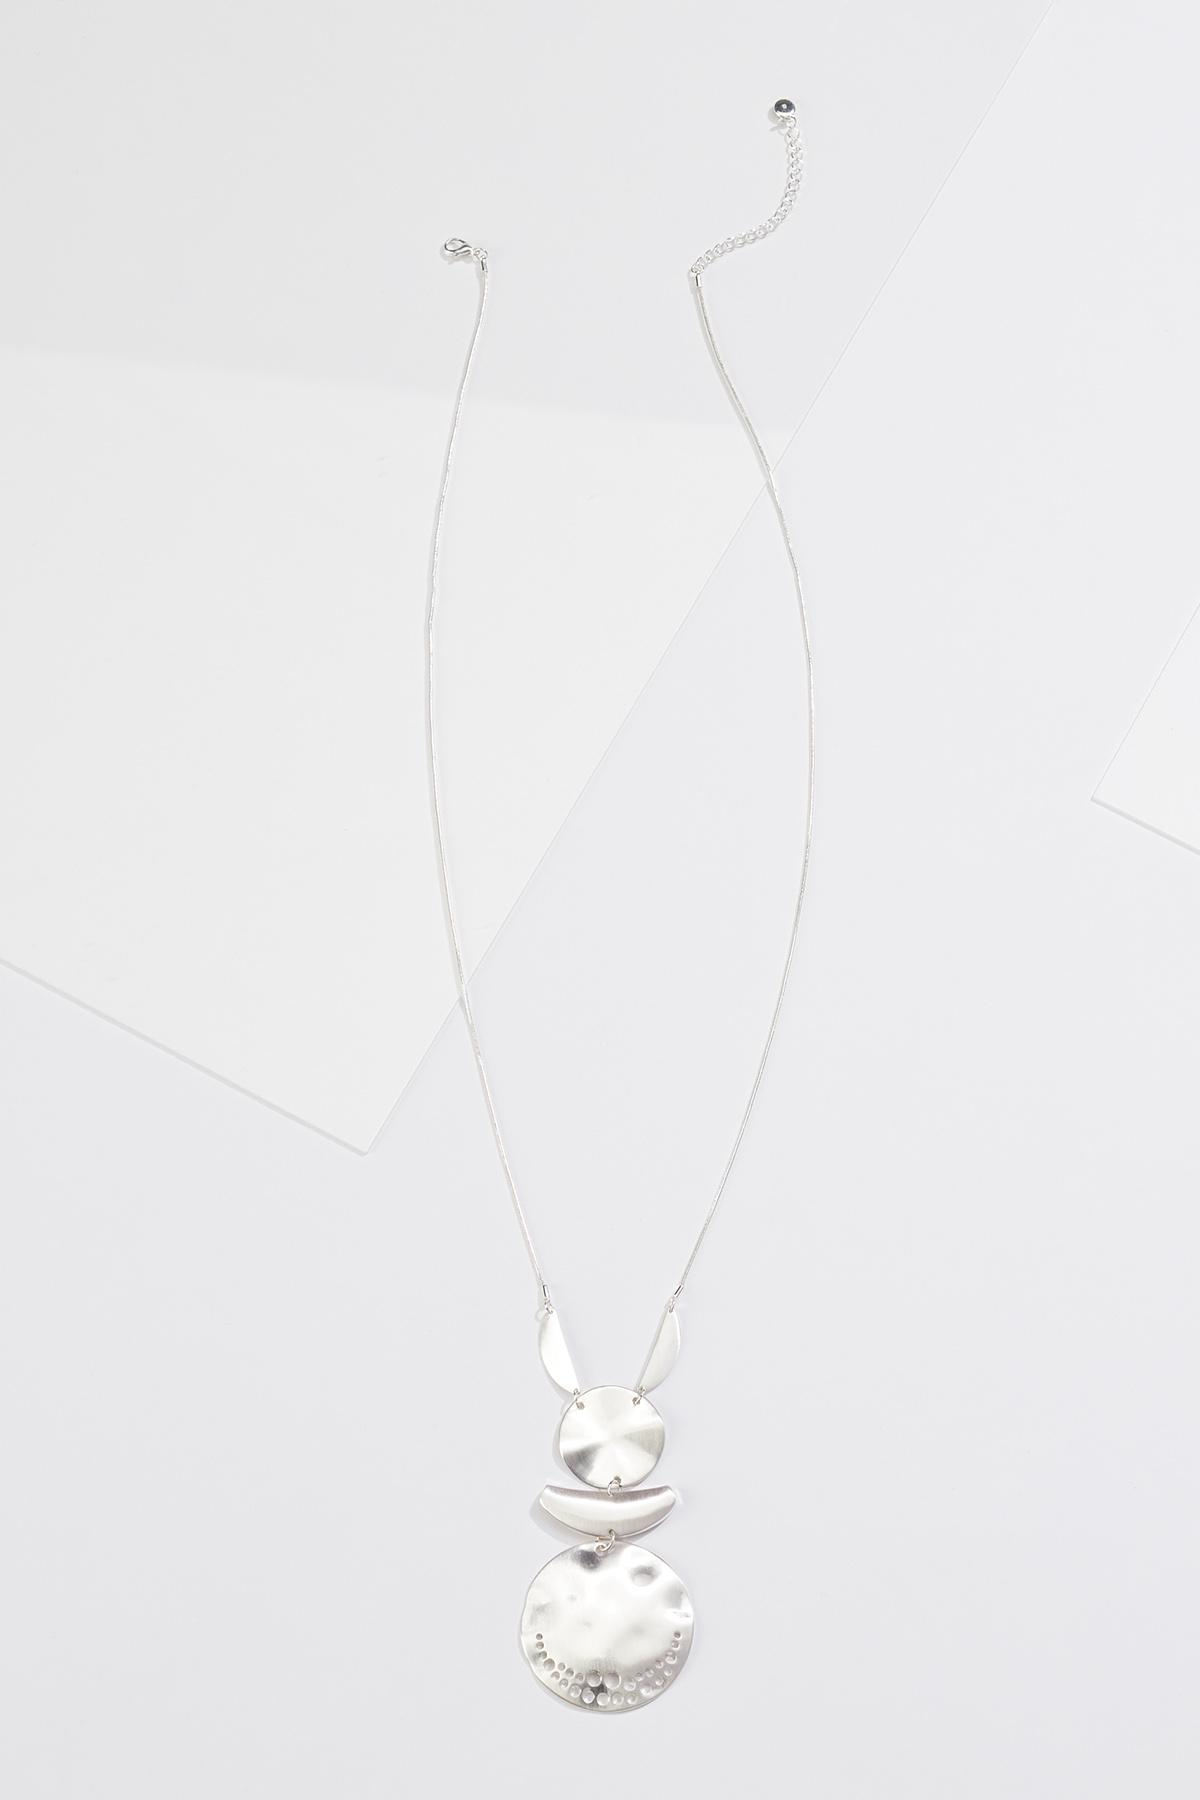 Tiered Silver Metal Necklace